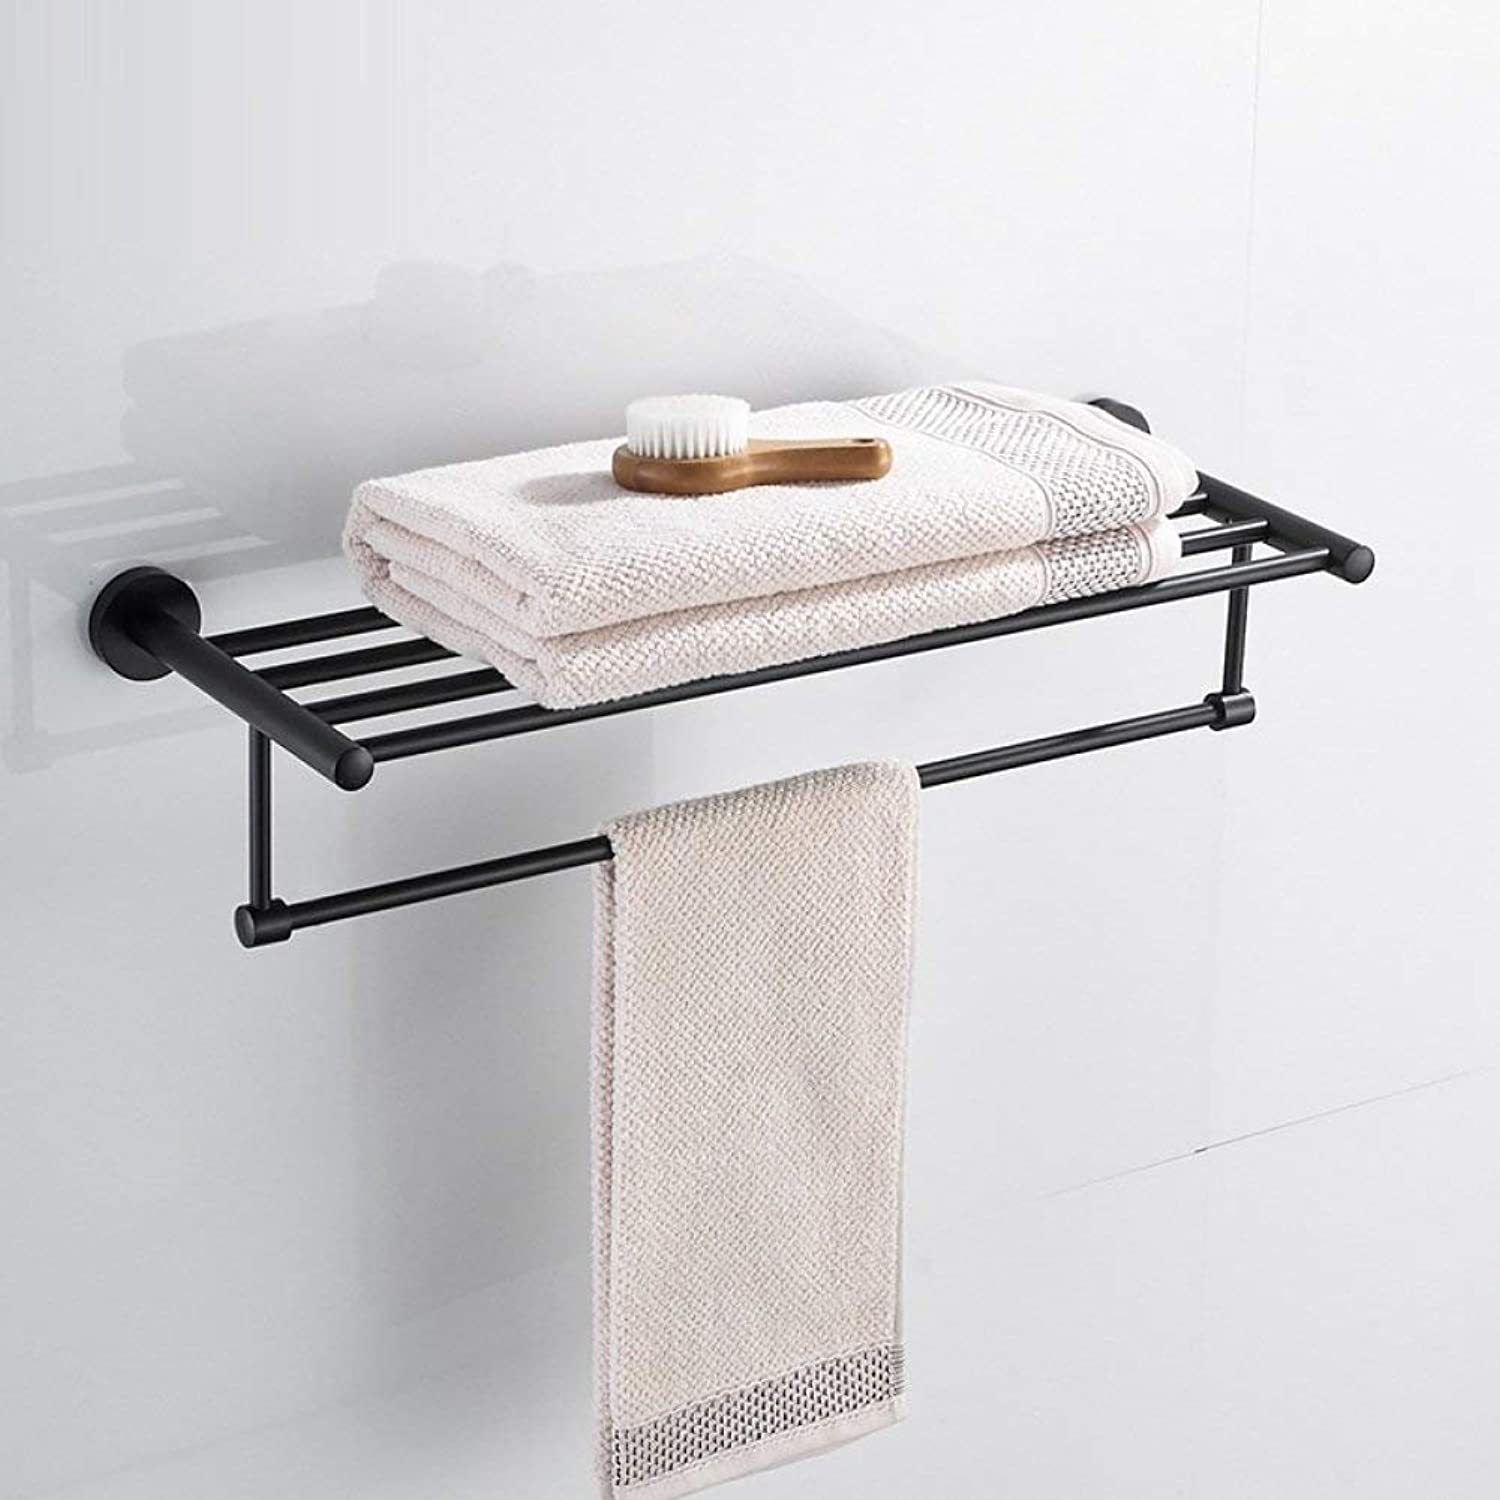 Modern Minimalist Style Equipment in Aluminum Alloy, and Home Bathroom Hair-Towels, a Process of Oxidation, Corrosion, Easy to Clean